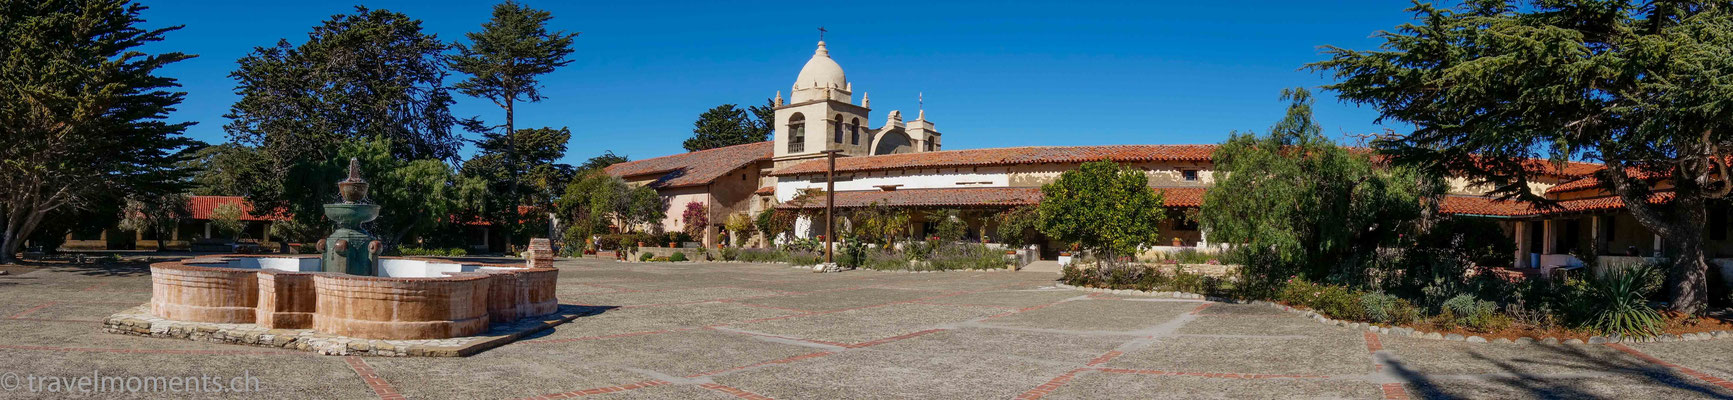 Mission San Carlos Borromeo de Carmelo - Carmel-by-the-Sea